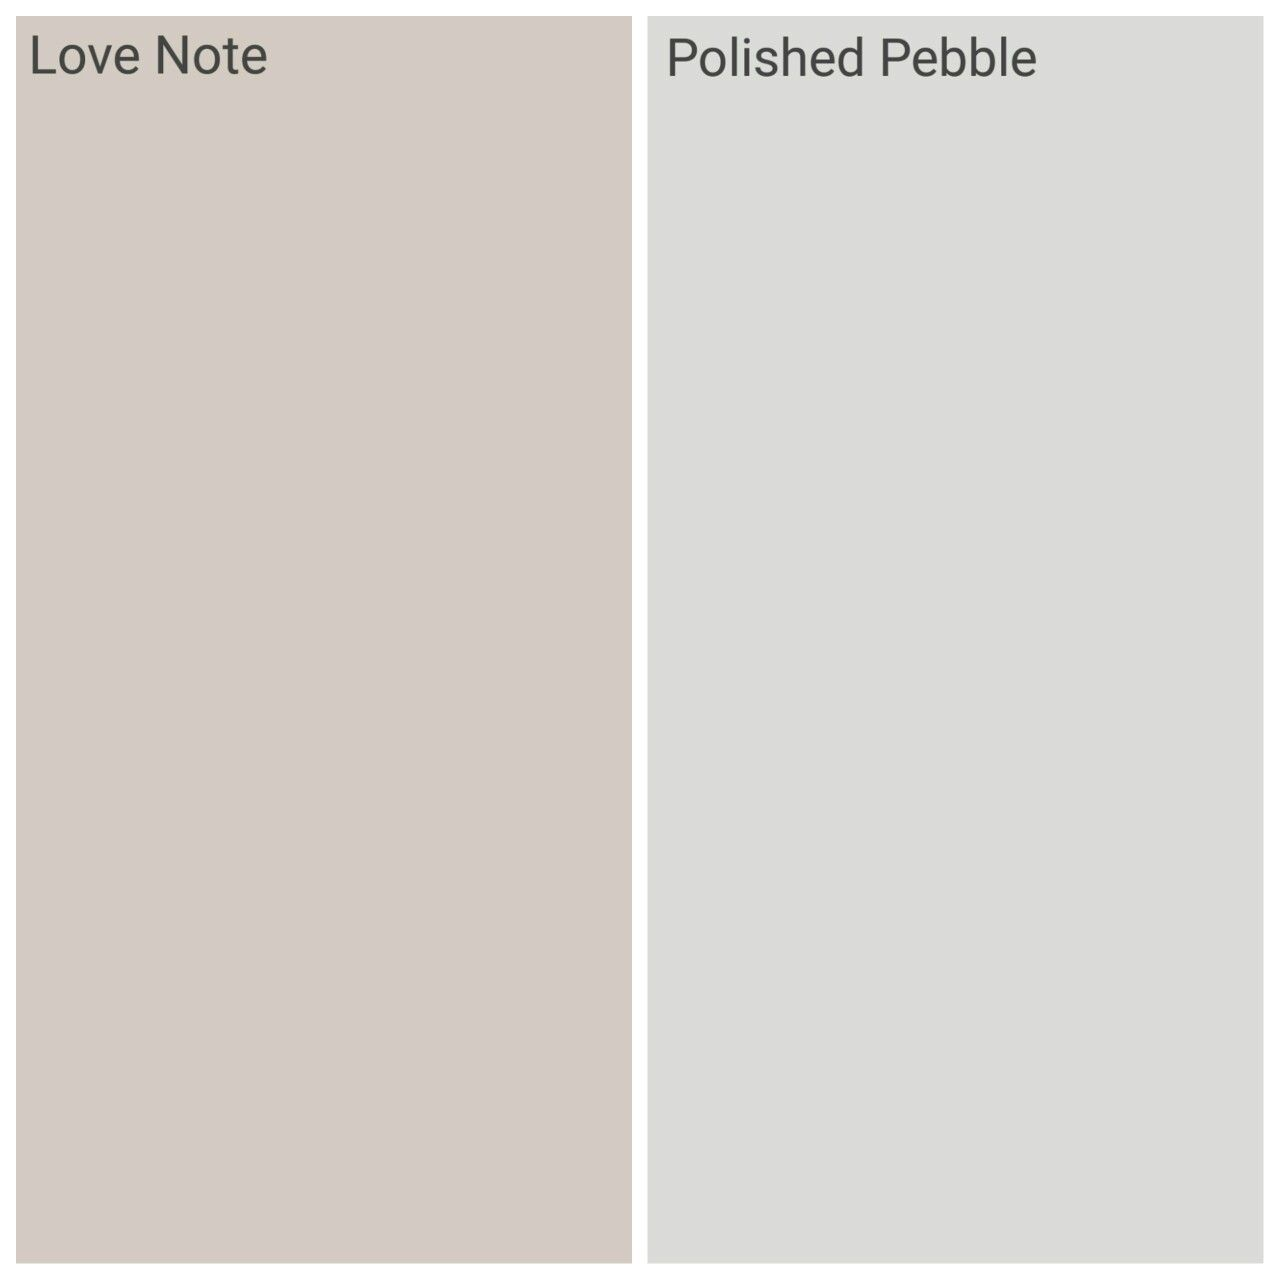 Dulux Love Note And Polished Pebble Hallways And Stairs Hallway Colours Hallway Paint Room Paint Colors